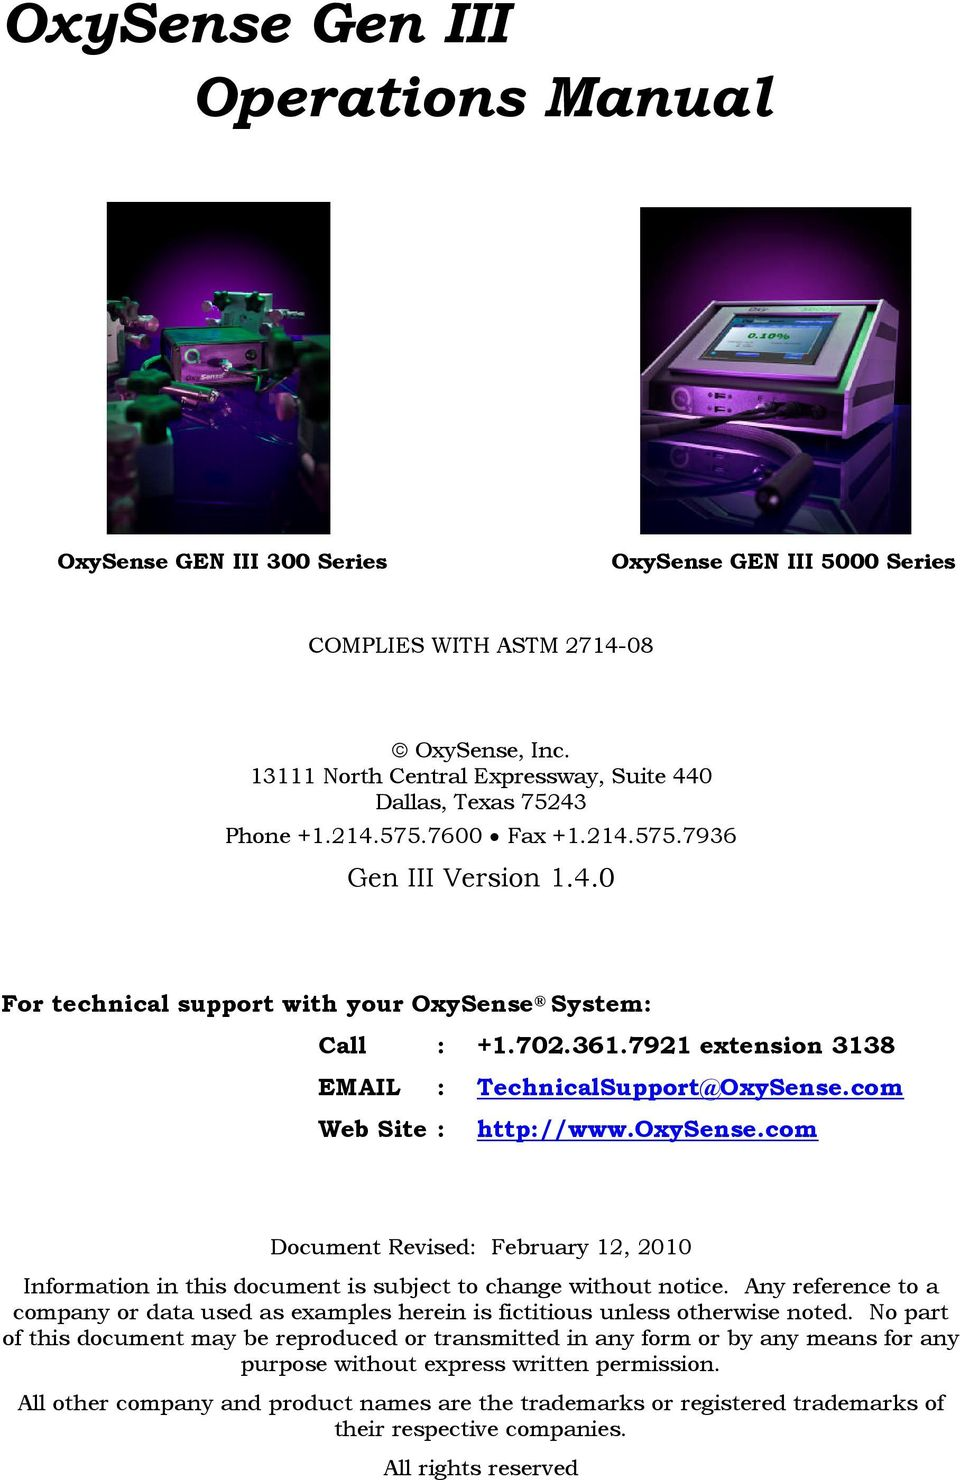 0 For technical support with your OxySense System: Call : +70367921 extension 3138 EMAIL : TechnicalSupport@OxySense.com Web Site : http://www.oxysense.